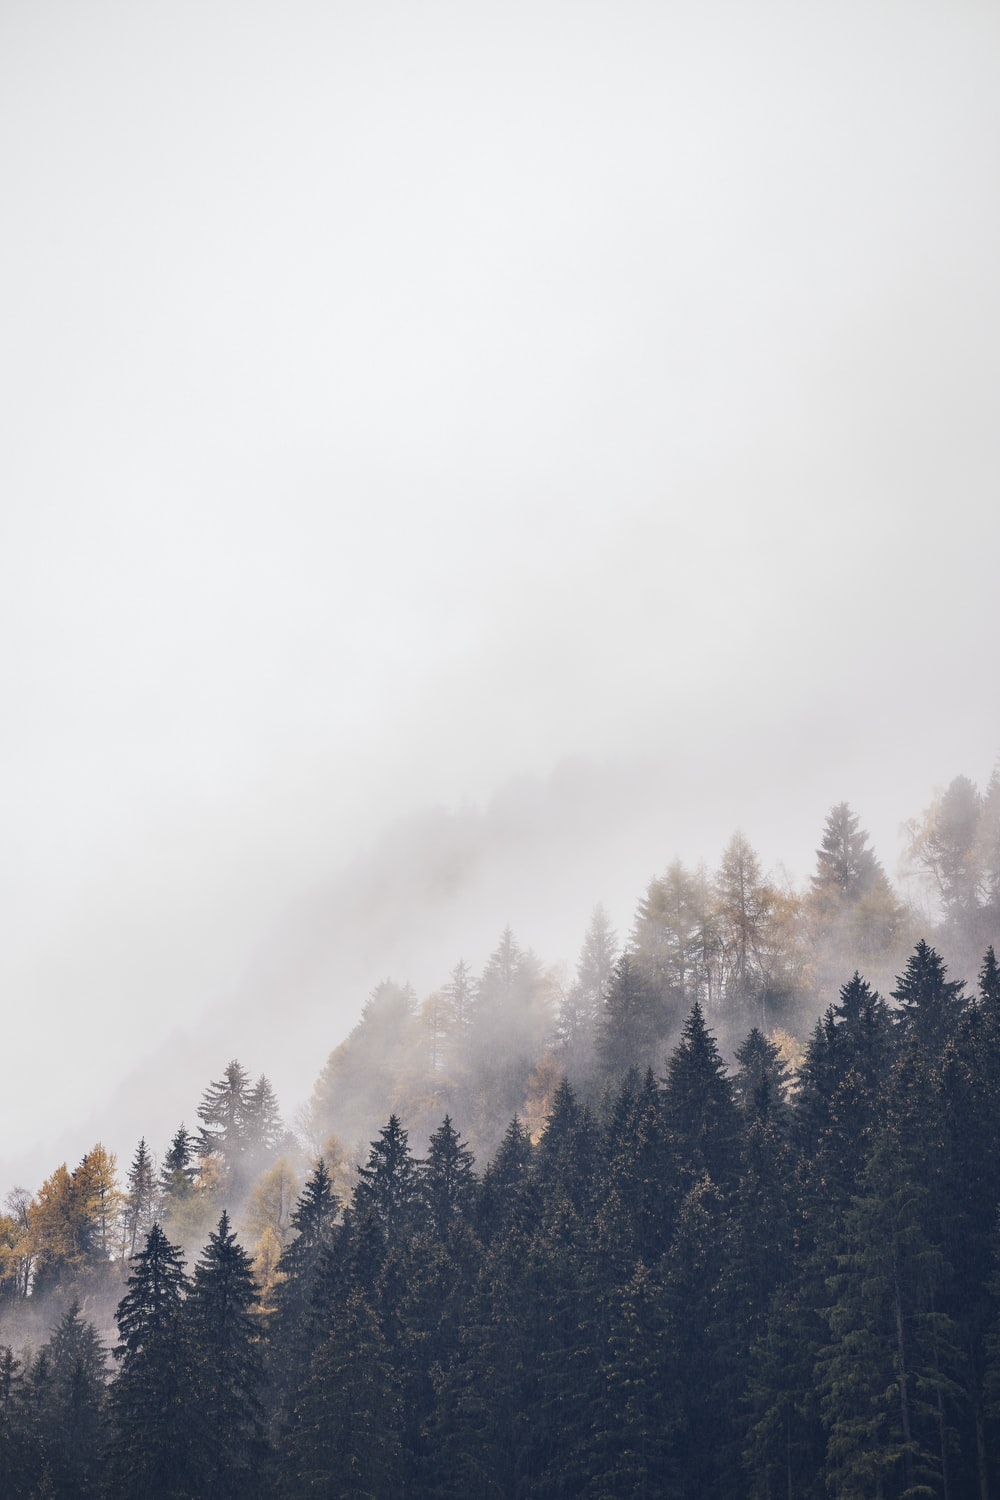 mountain with tall trees covered with fogs